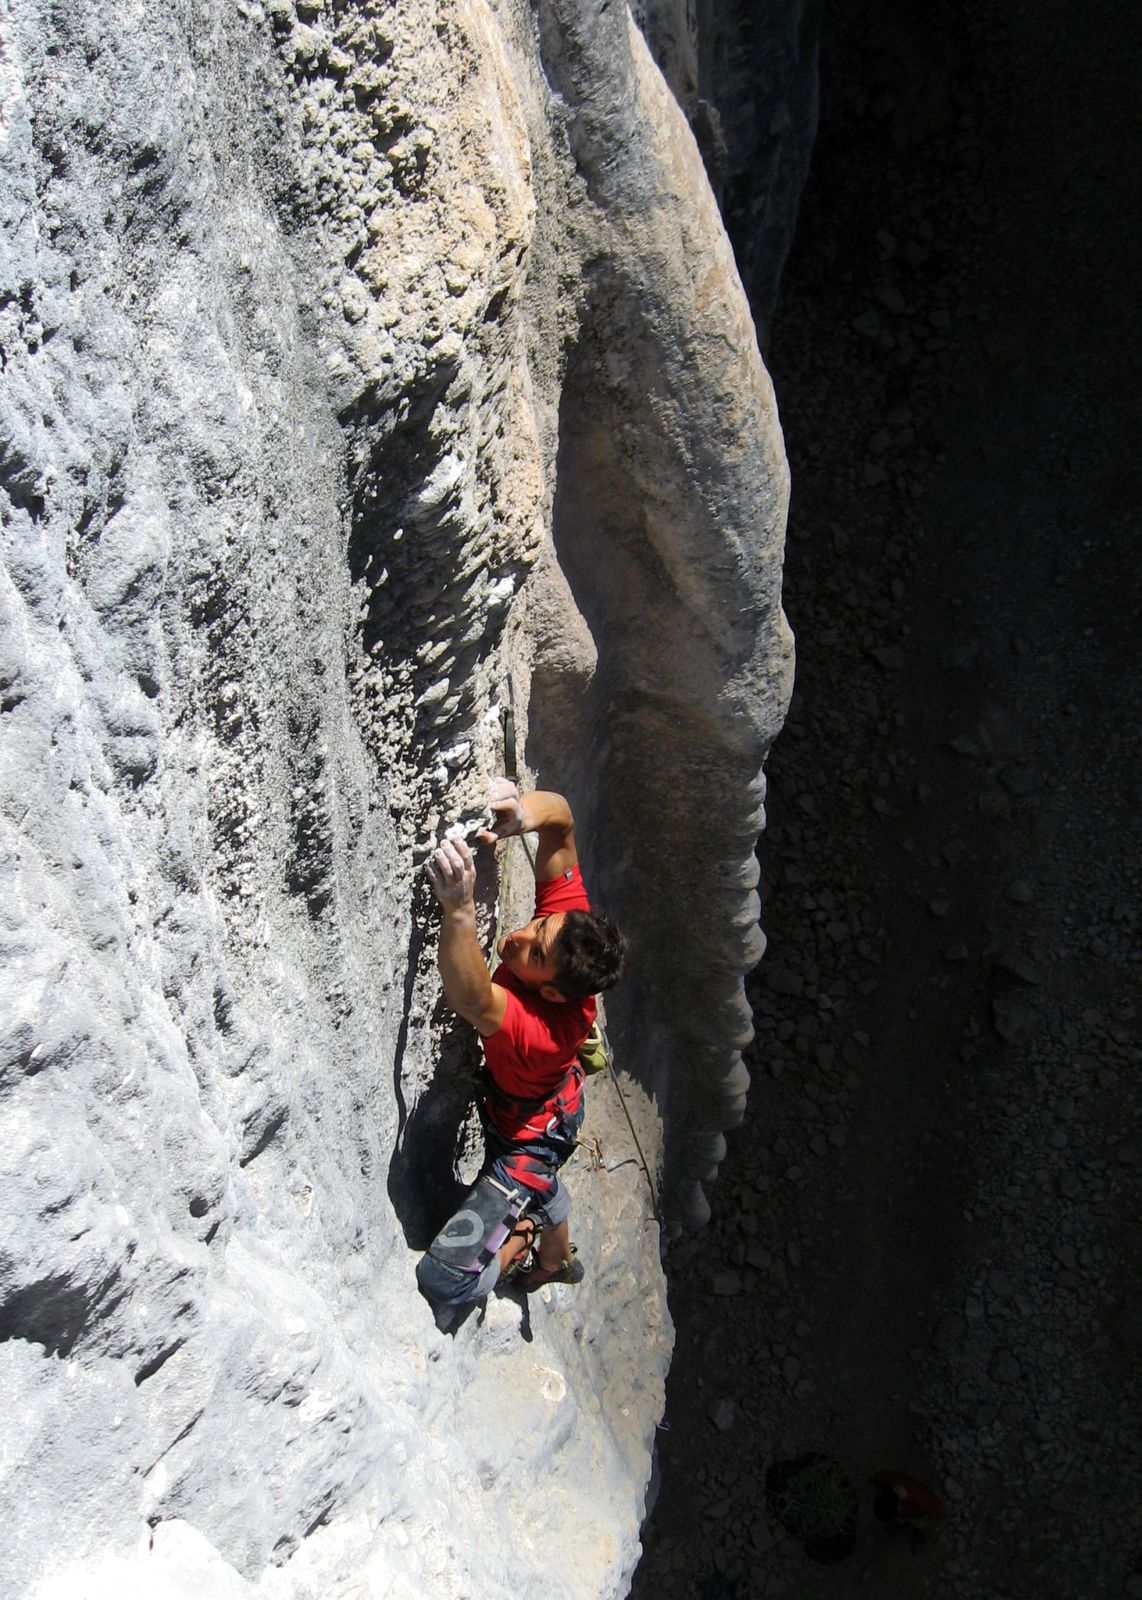 Big Grey Tuffa, 5.12d in Las Animas